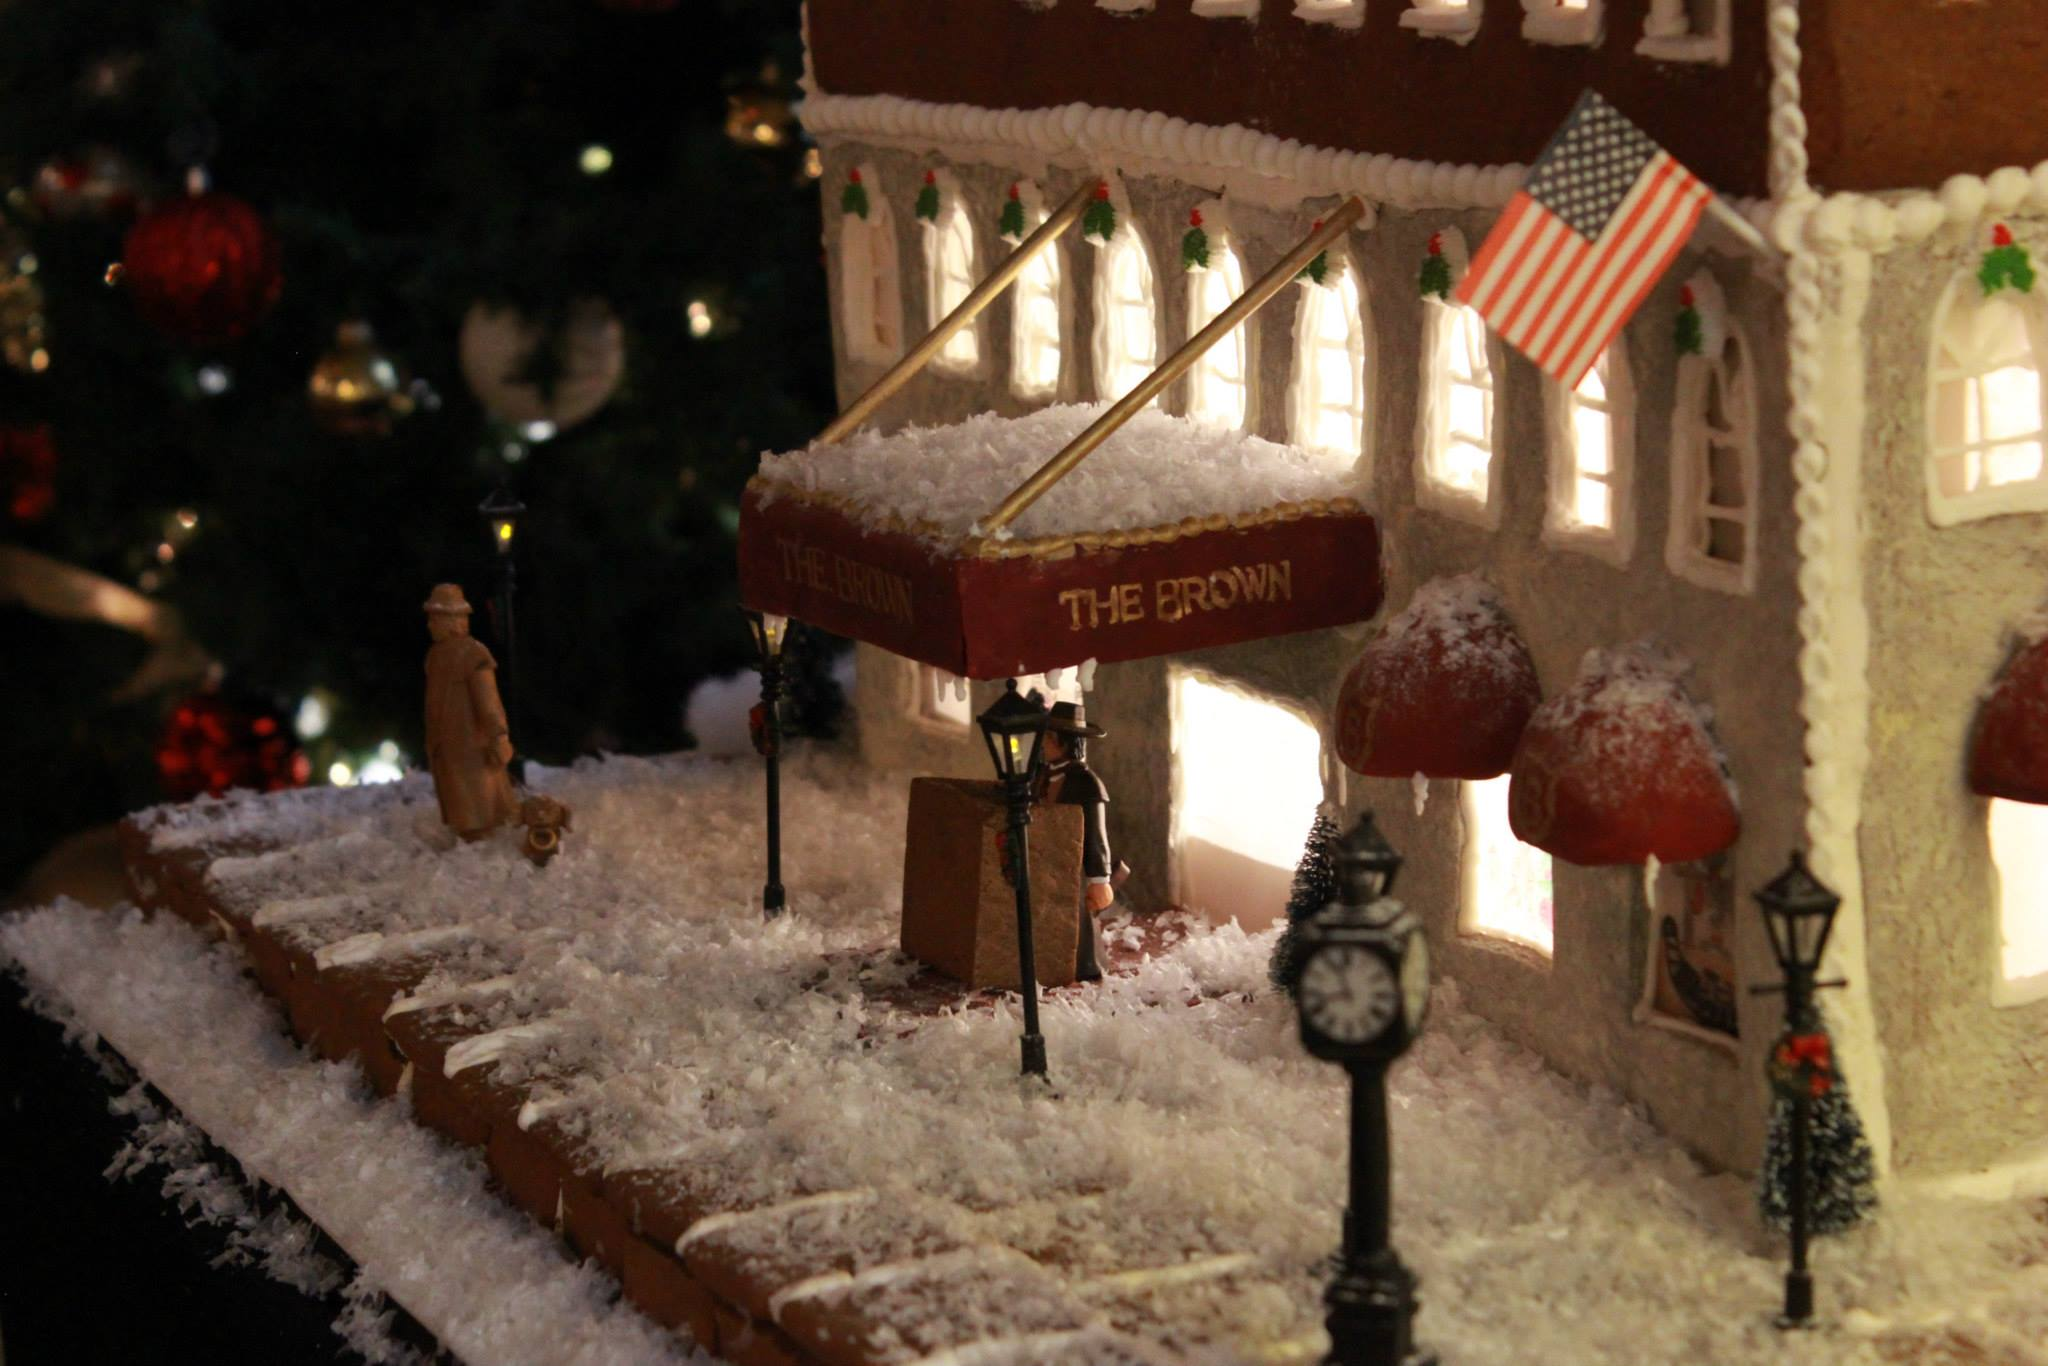 The GingerBrown is a replica of Louisville's Brown Hotel made from gingerbread and icing.